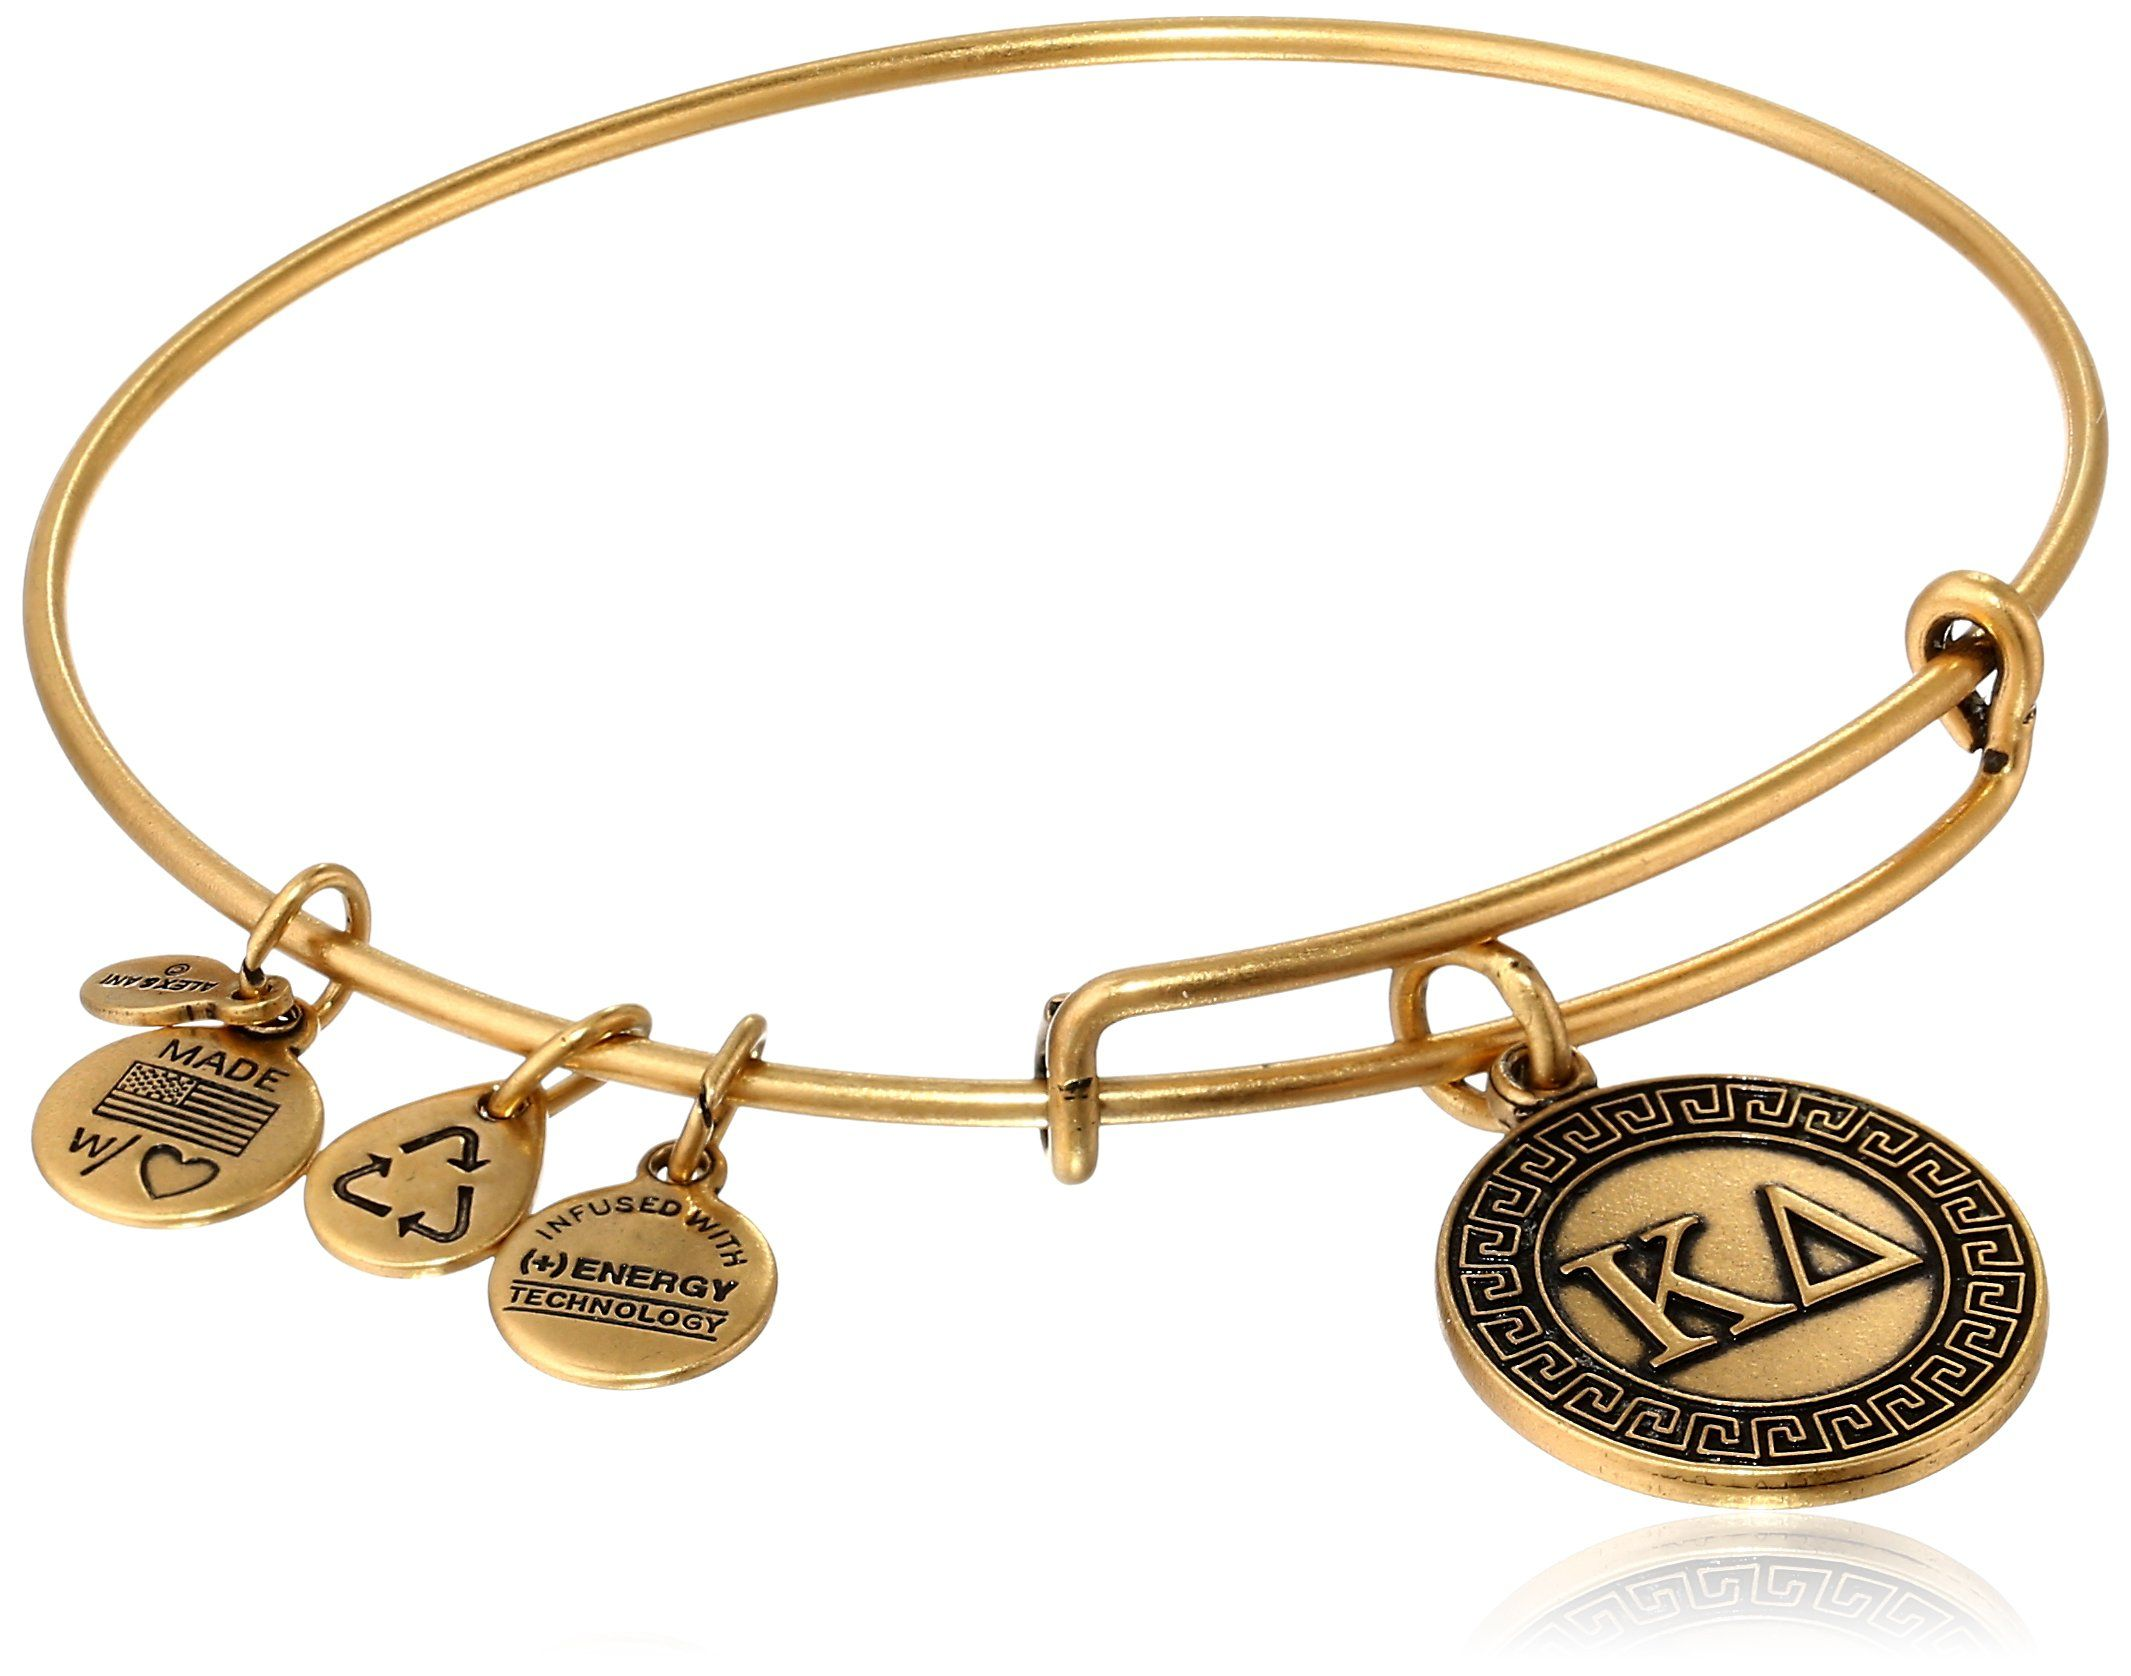 expandable vary are kappa bangle rafaelian in shape eds items pin alex may bracelet and sorority size that delta color handmade wire gold ani tone